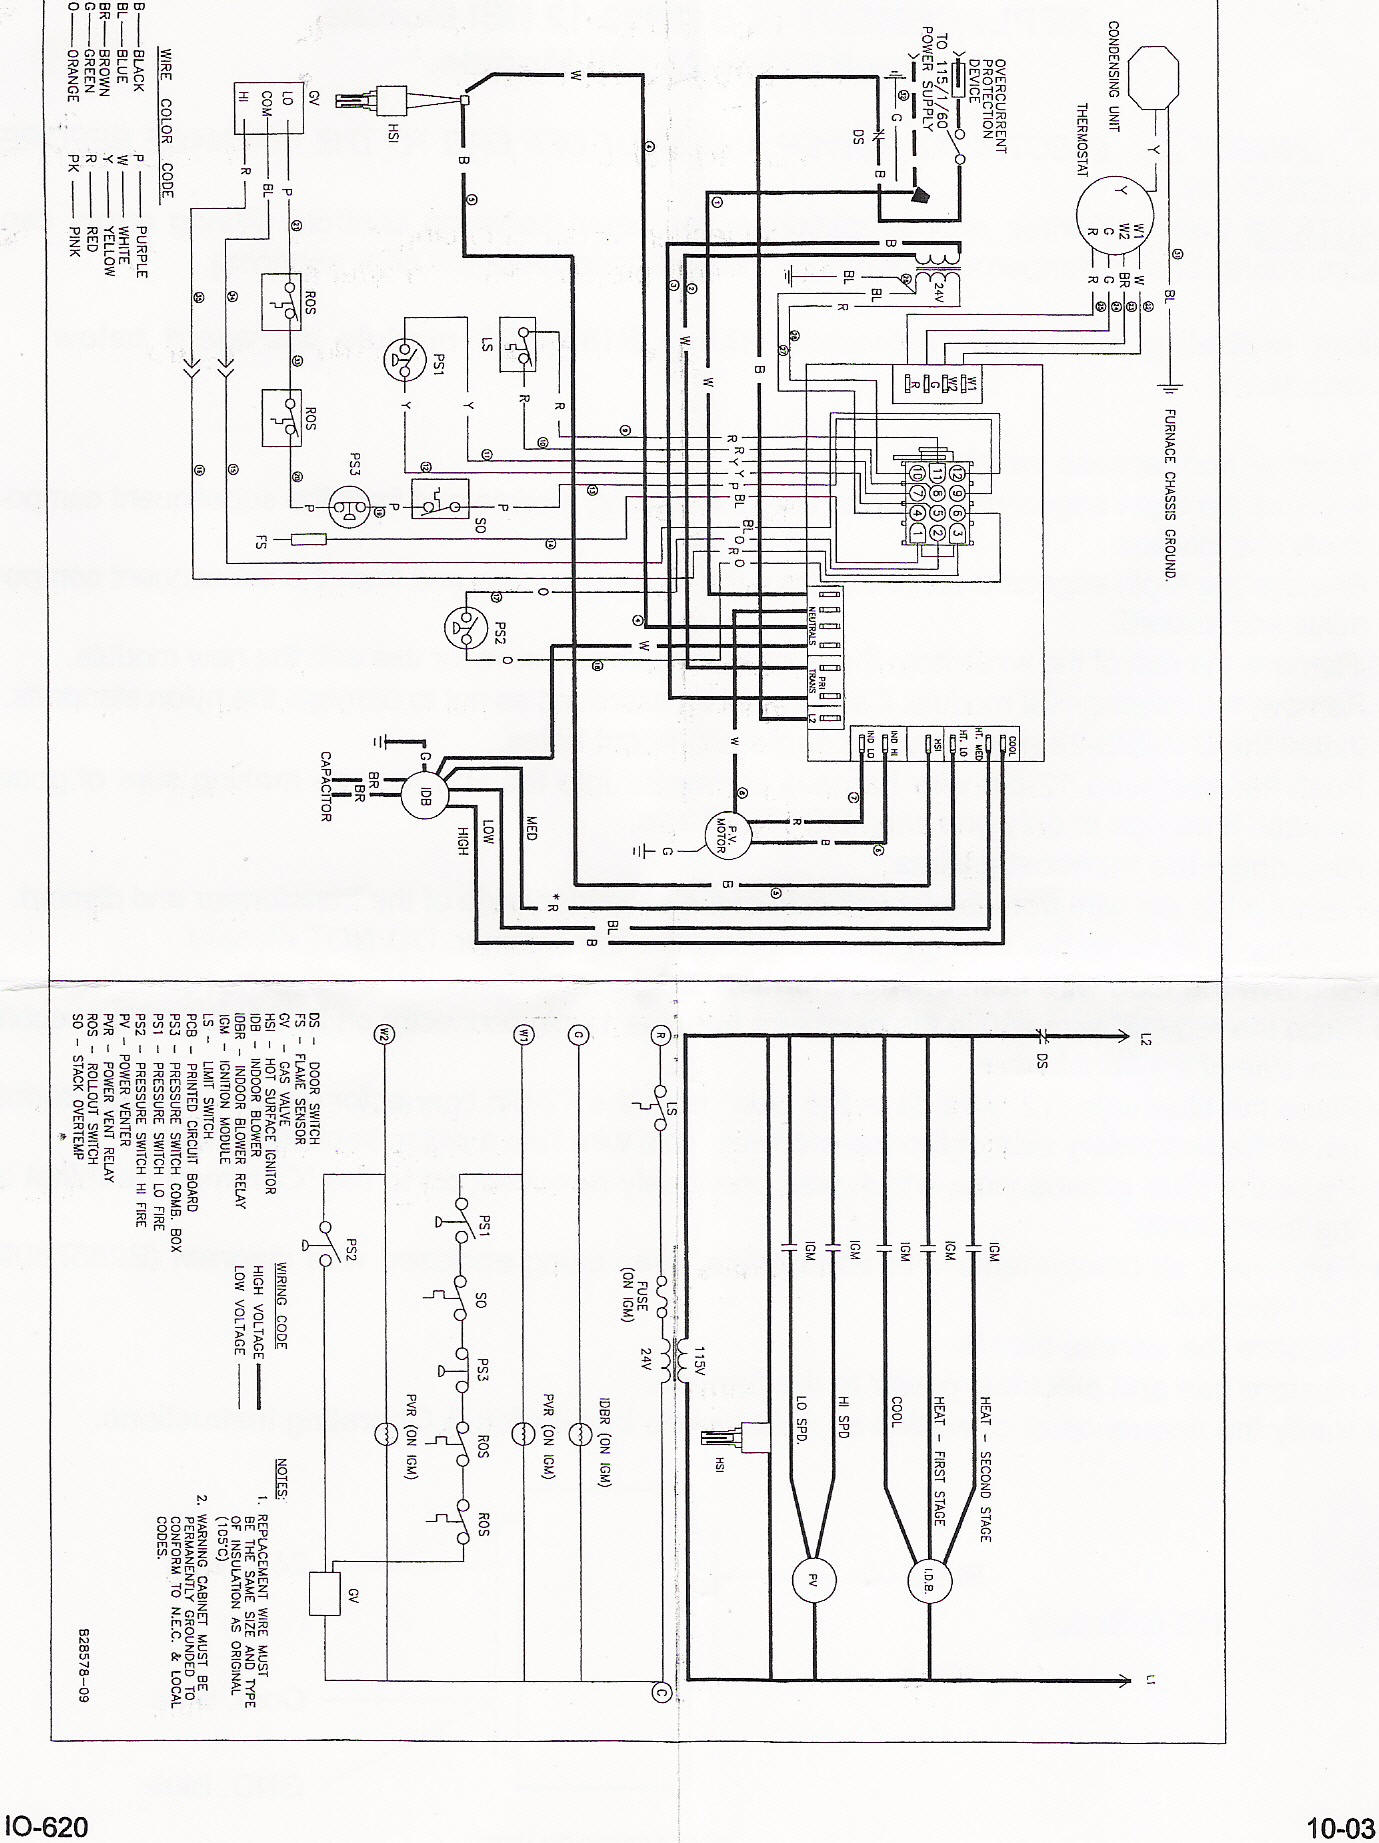 goodma2 instr goodman control board b18099 23 instructions goodman furnace thermostat wiring diagram at readyjetset.co